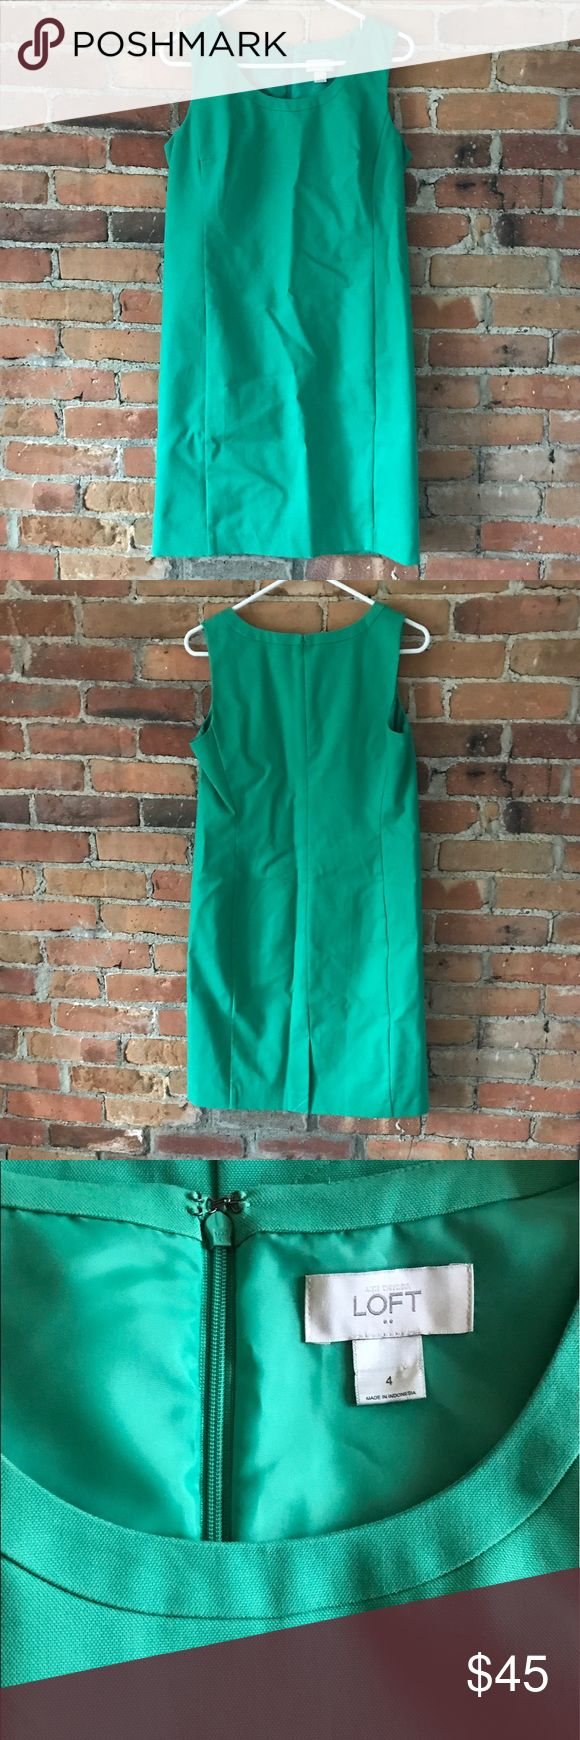 """NWOT Green LOFT dress Never worn LOFT light green dress perfect for summer work wardrobe! Looser fit but still has definition. Fully lined, 36"""" long, 28"""" armpit to bottom, 36"""" bust, 6"""" slit in back, still sewn closed! ⭐️Pet free & smoke free home, open to offers! LOFT Dresses Midi"""